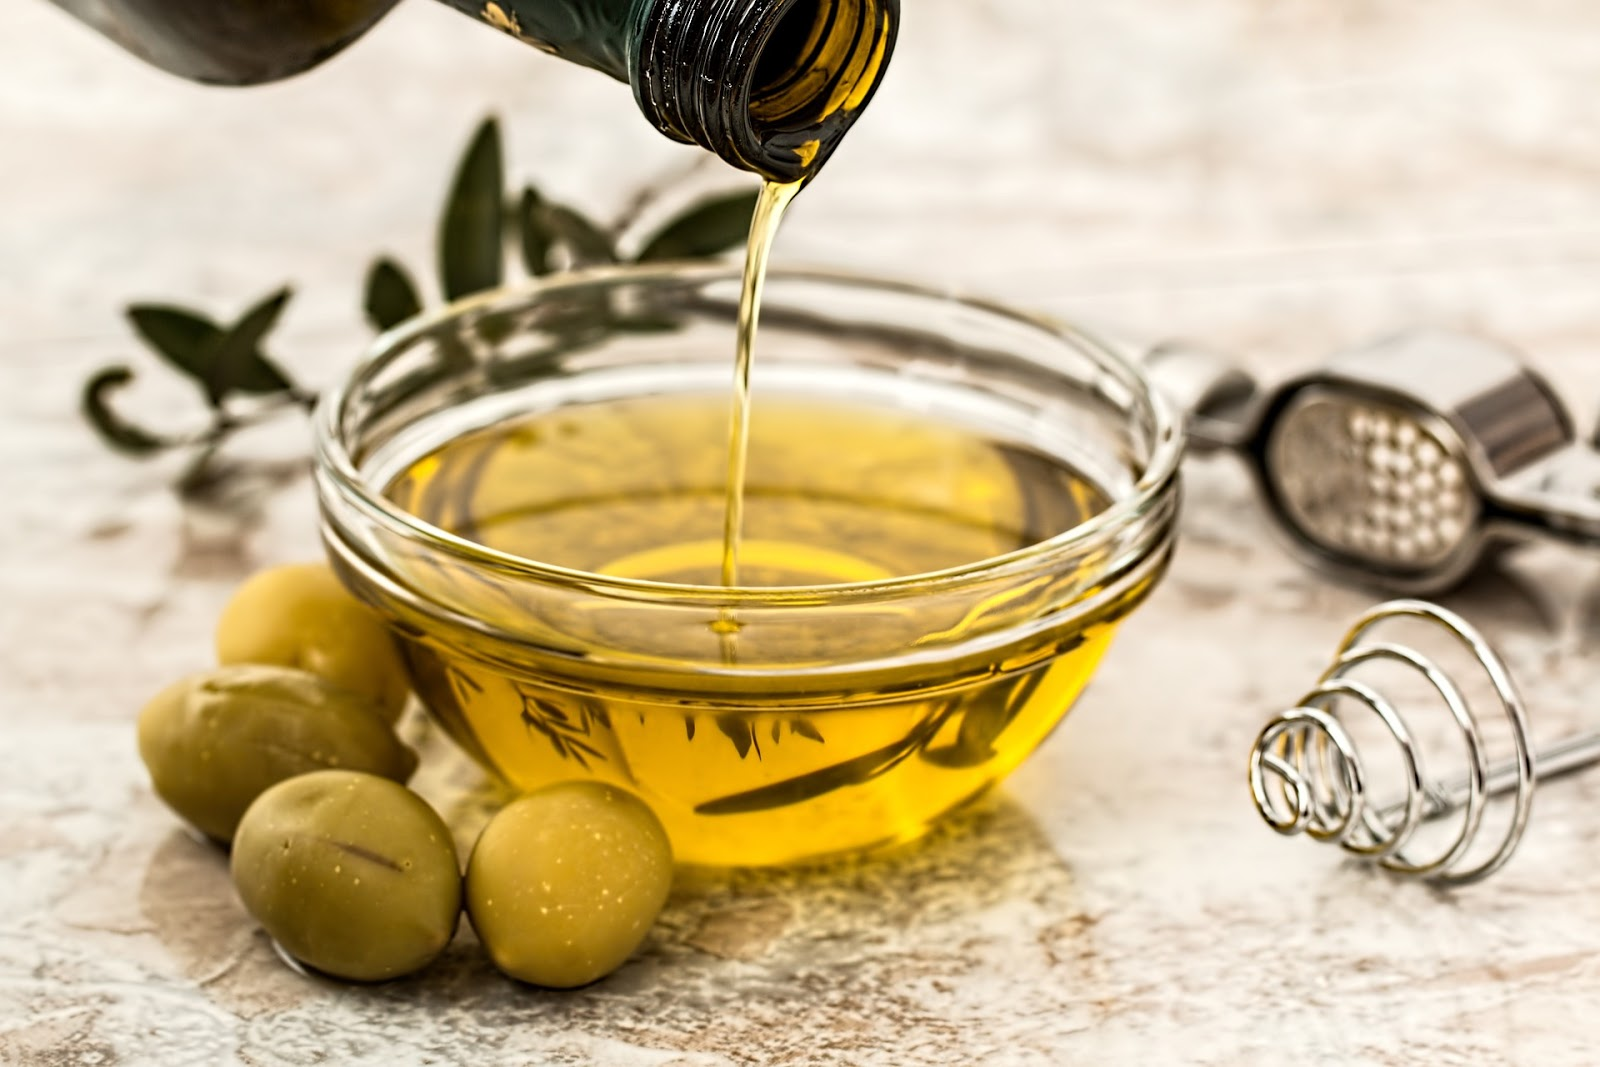 olive oil: one of the healthiest fats in the world – health